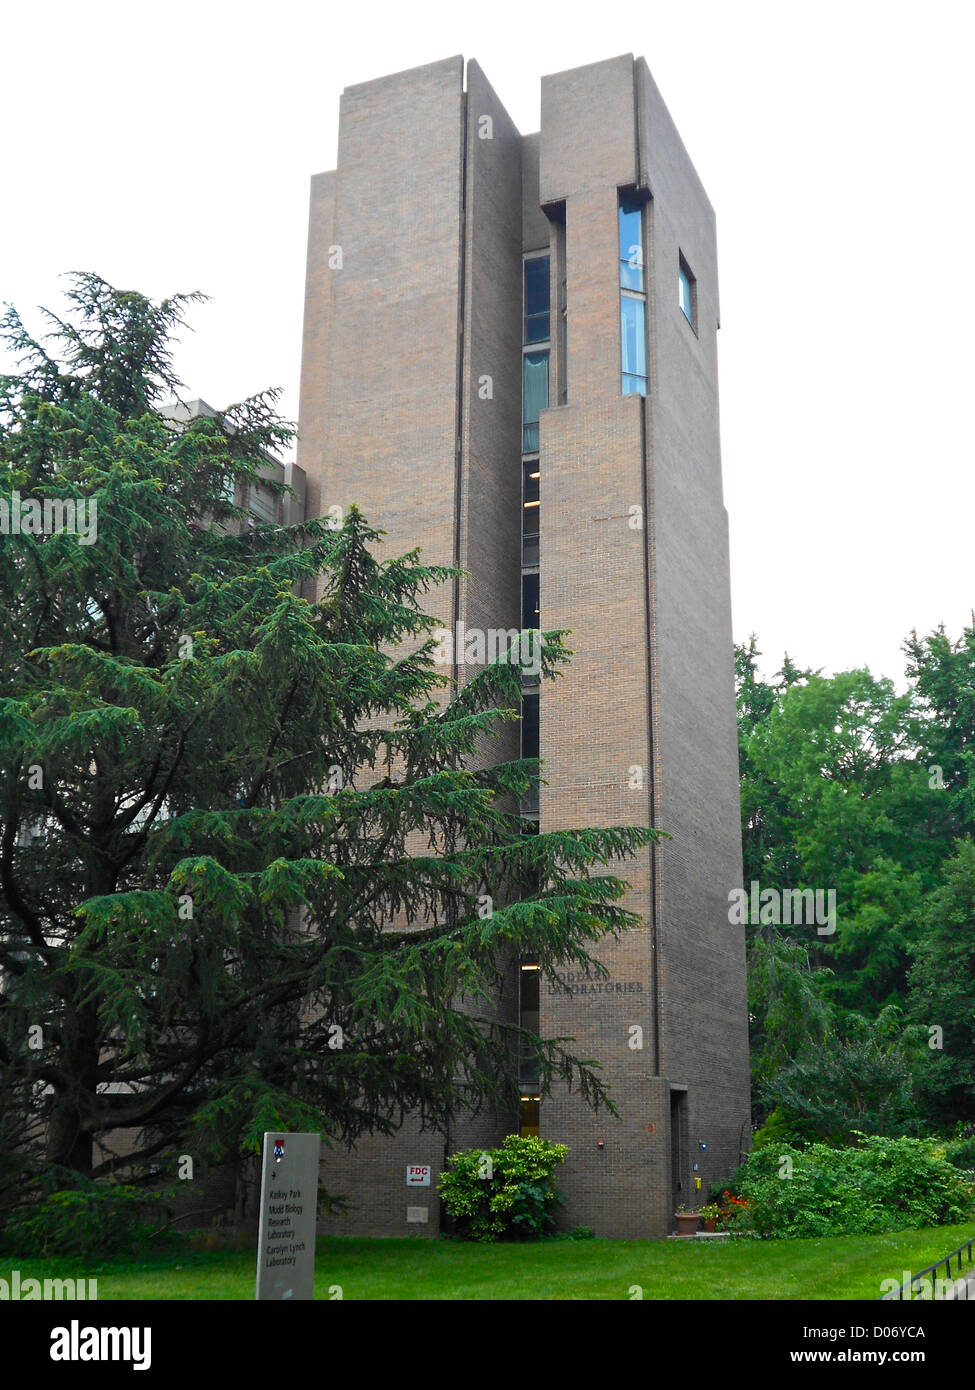 Tower of the Goddard Labs (attached to the Richards Labs) on the NRHP in Philadelphia, U Penn campus - Stock Image